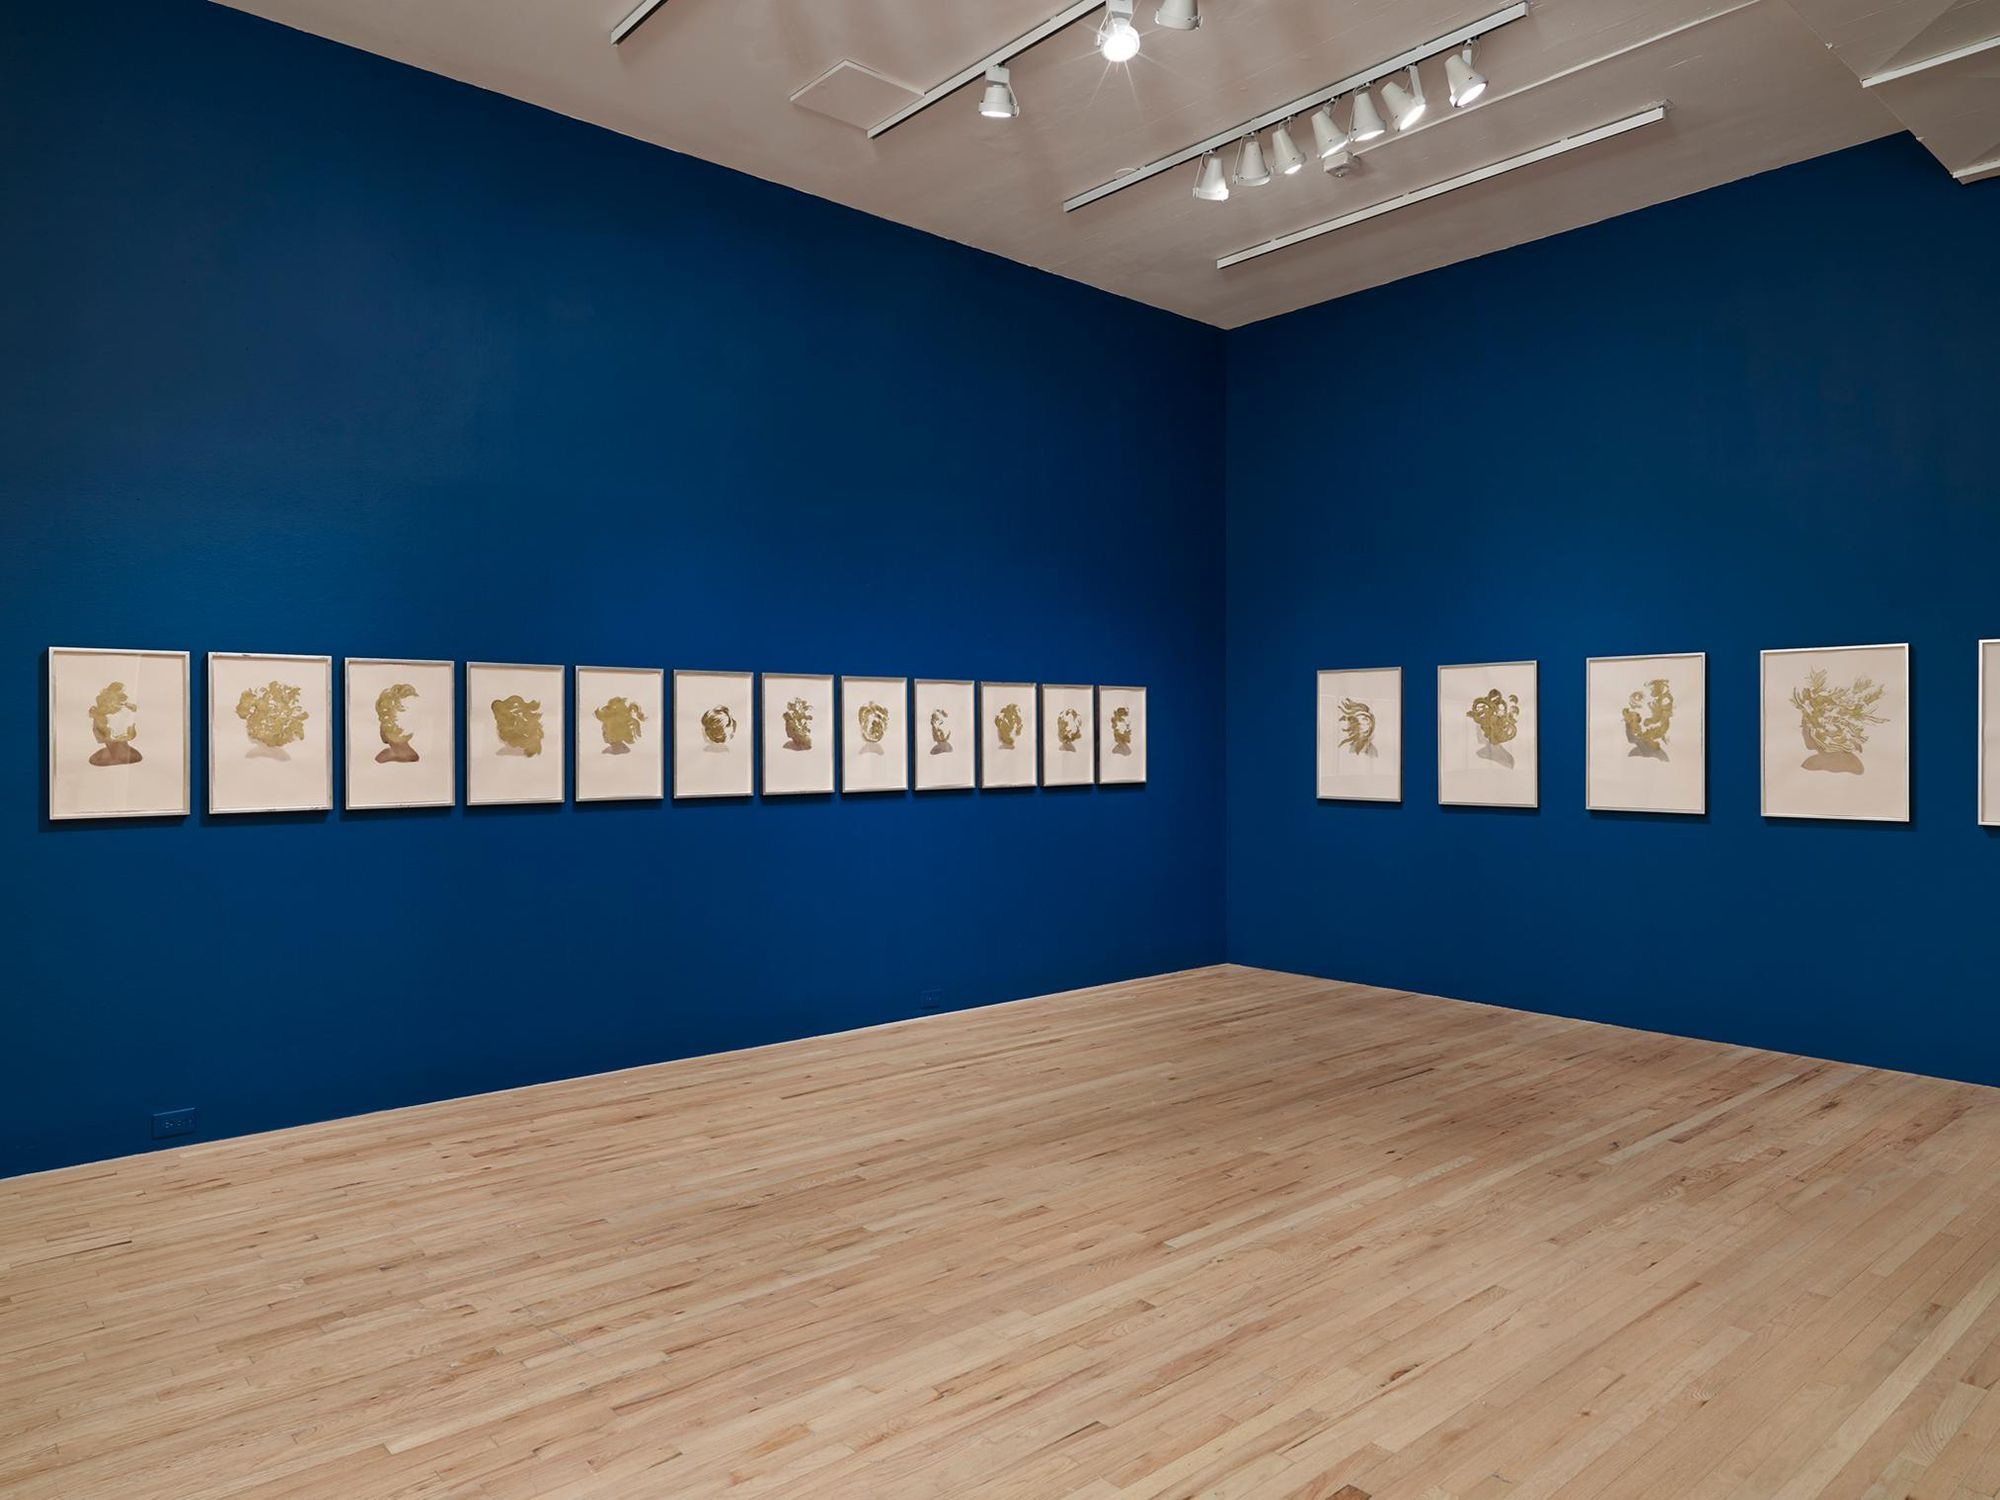 """Lorna Simpson: Works on Paper"", Aspen Art Museum, Aspen, CO 2013"